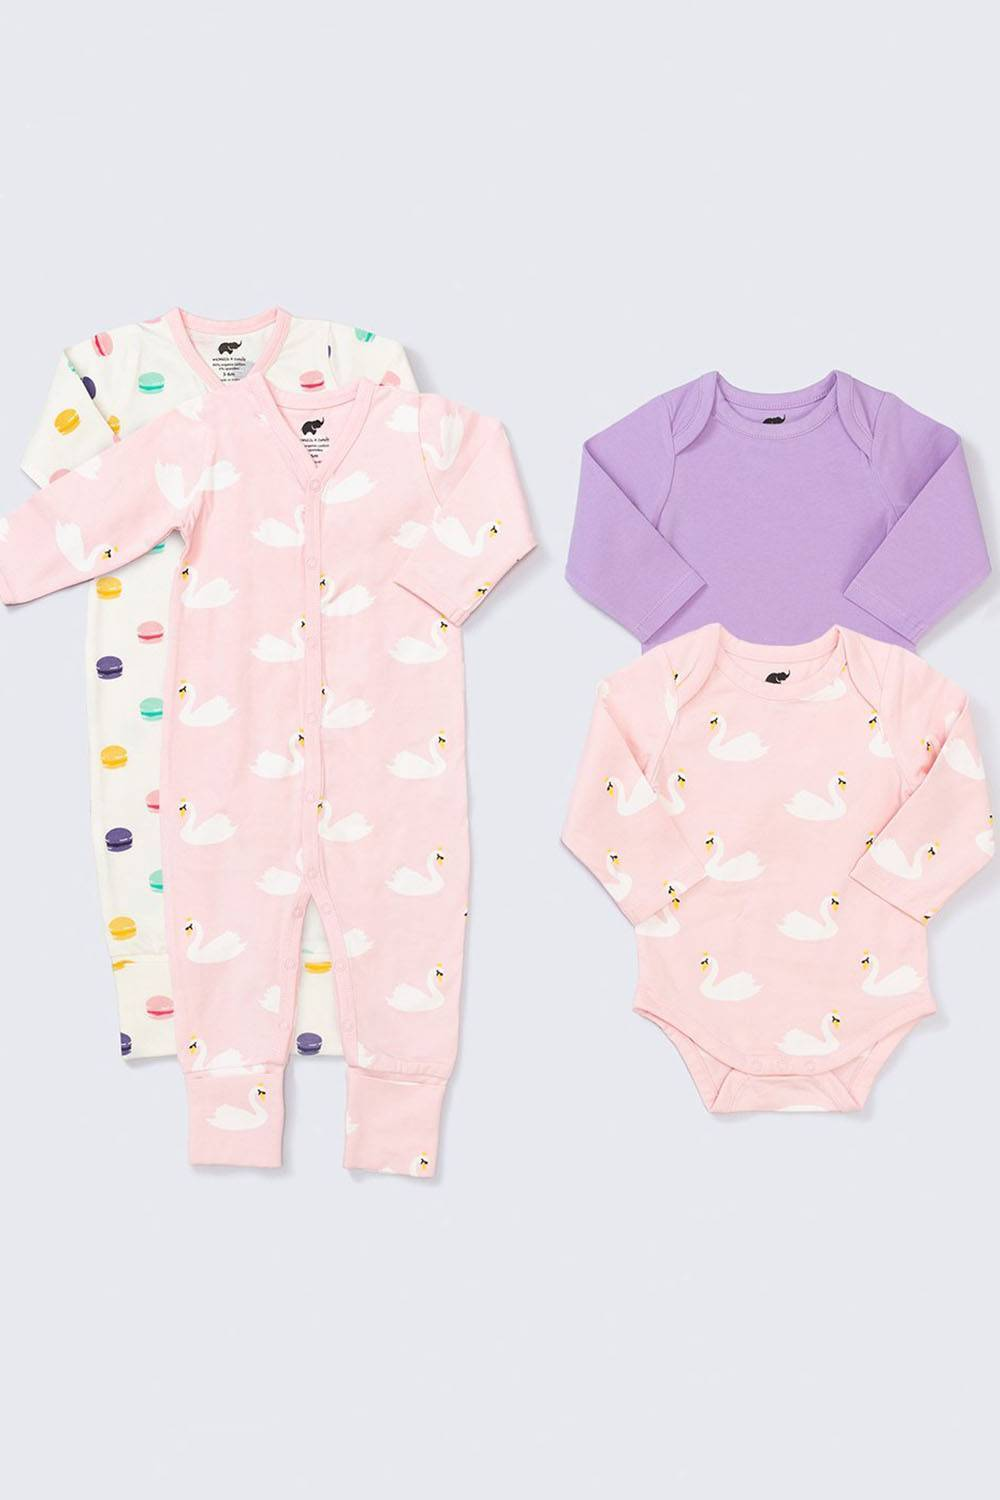 monica andy baby girl cute easter clothes